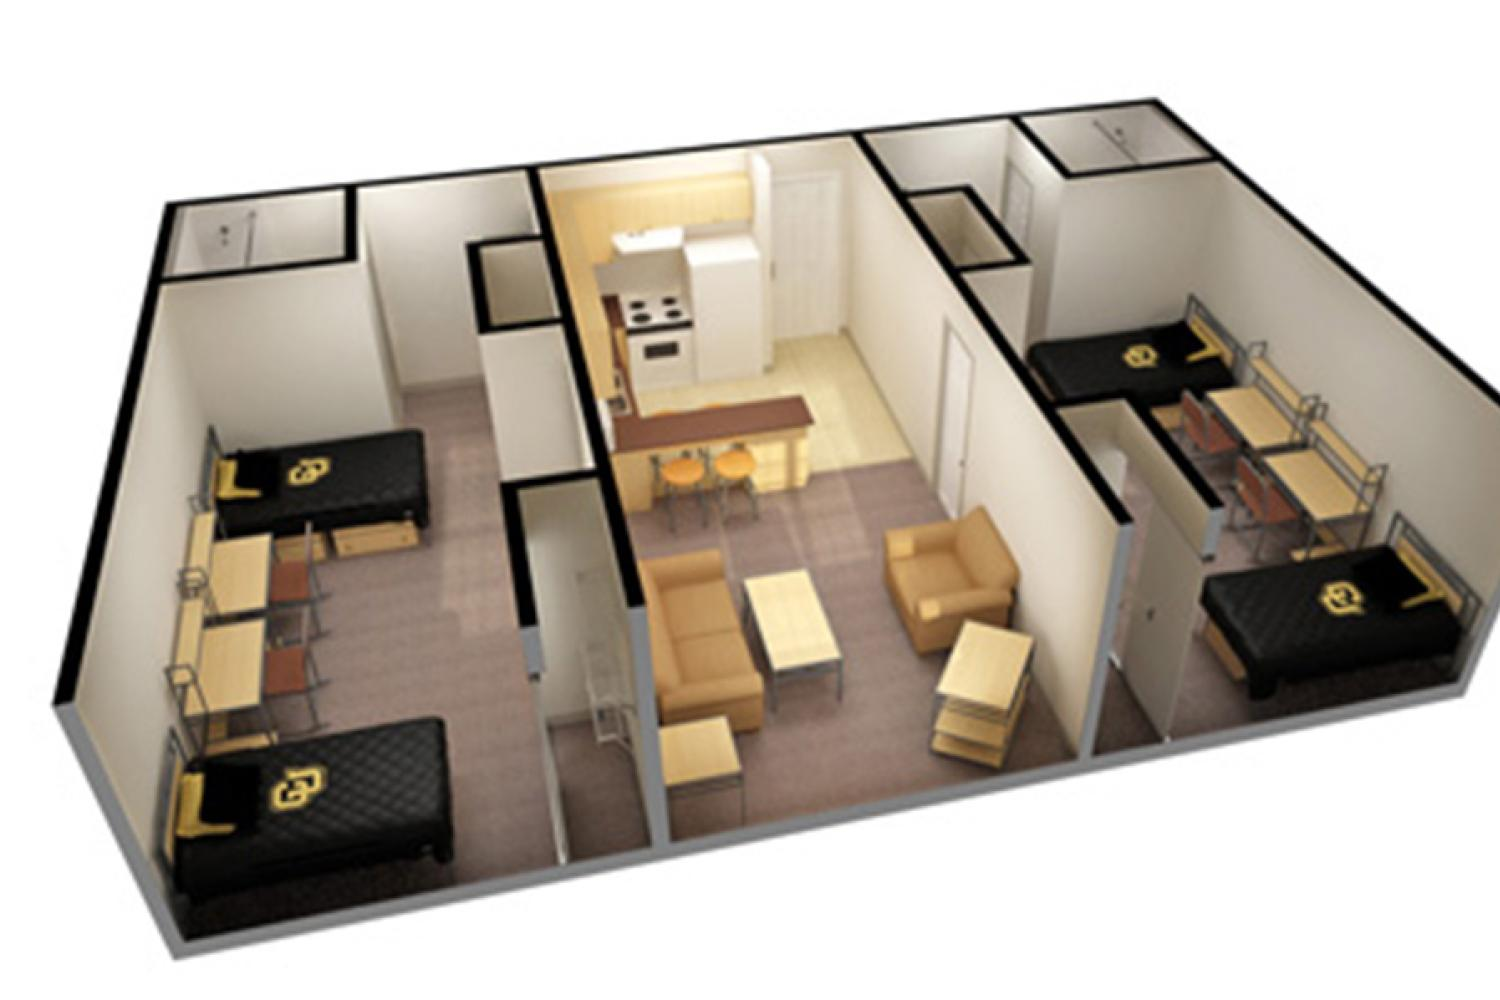 3D image with two double rooms, two bathrooms, living room, kitchen